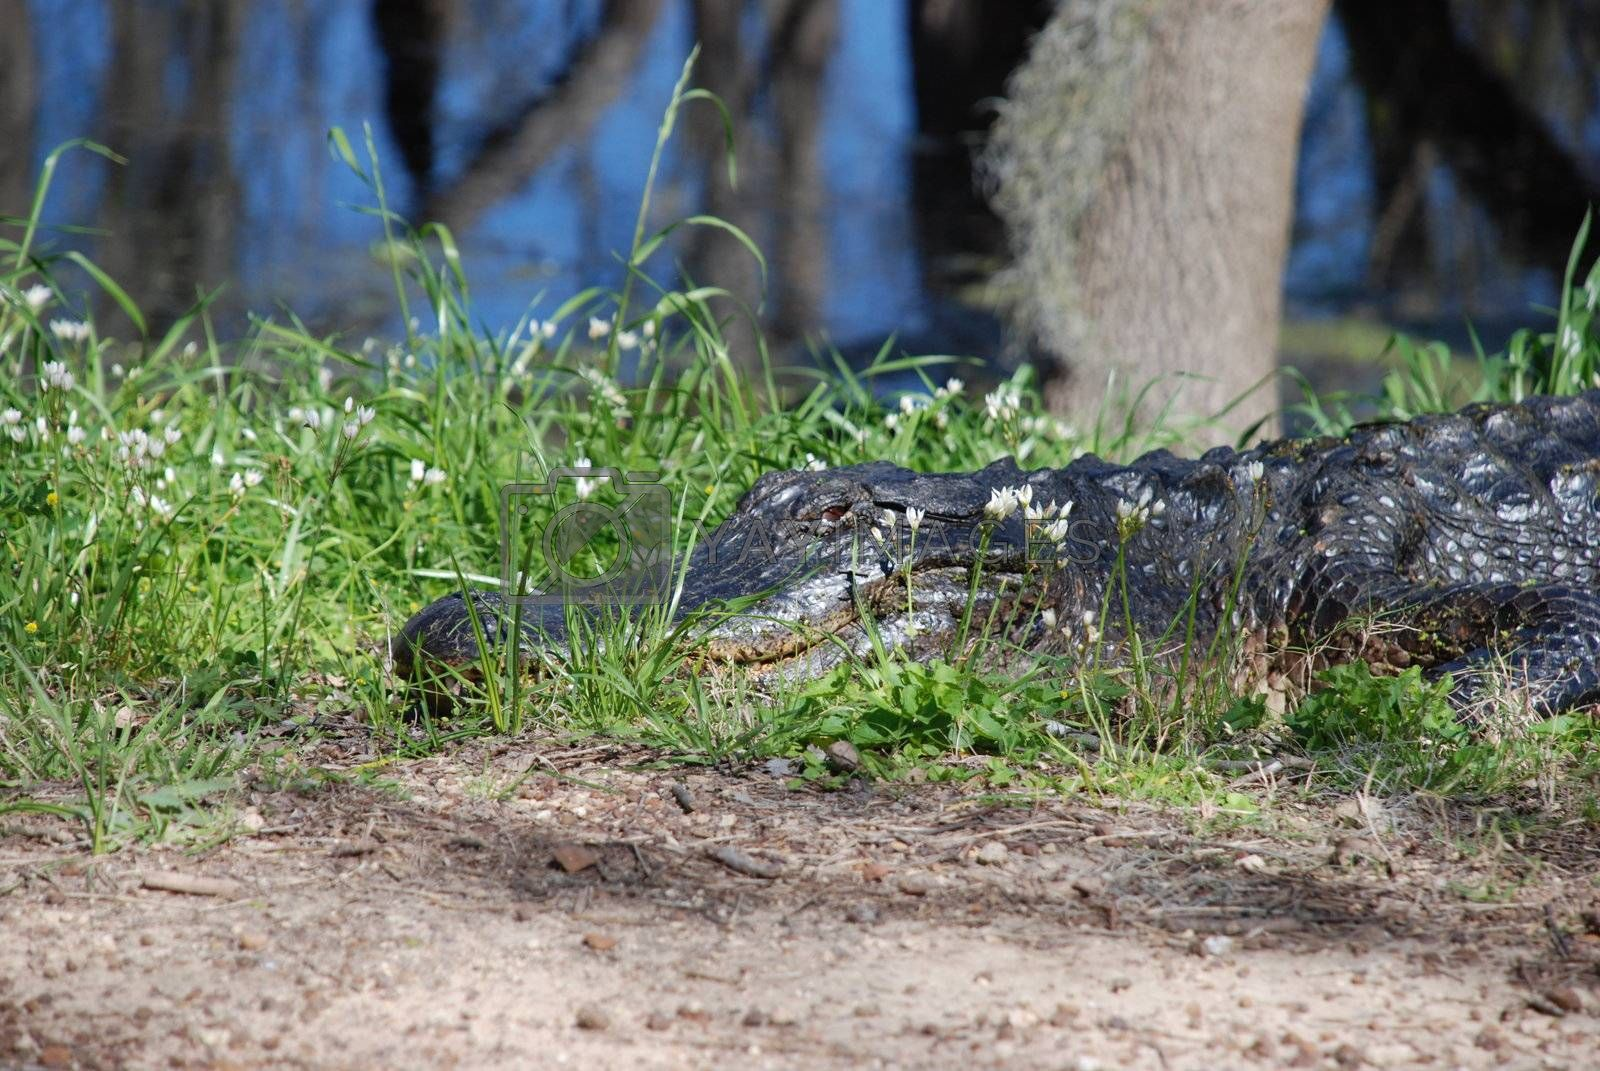 Alligator on the pathway in Brazos Bend State Park in Texas.